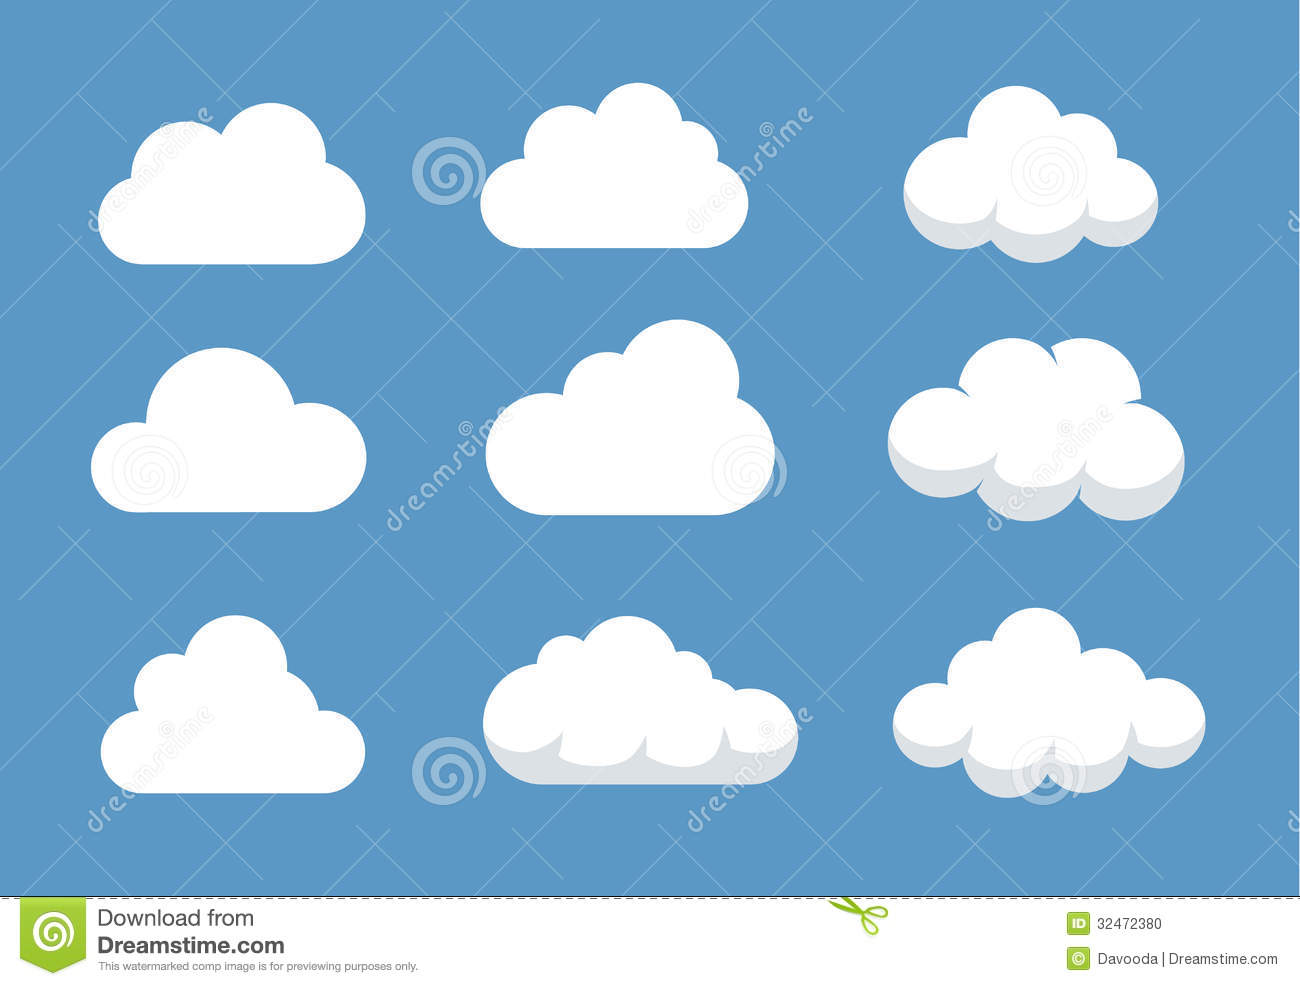 Different Cloud Shapes Stock Photo - Image: 32472380